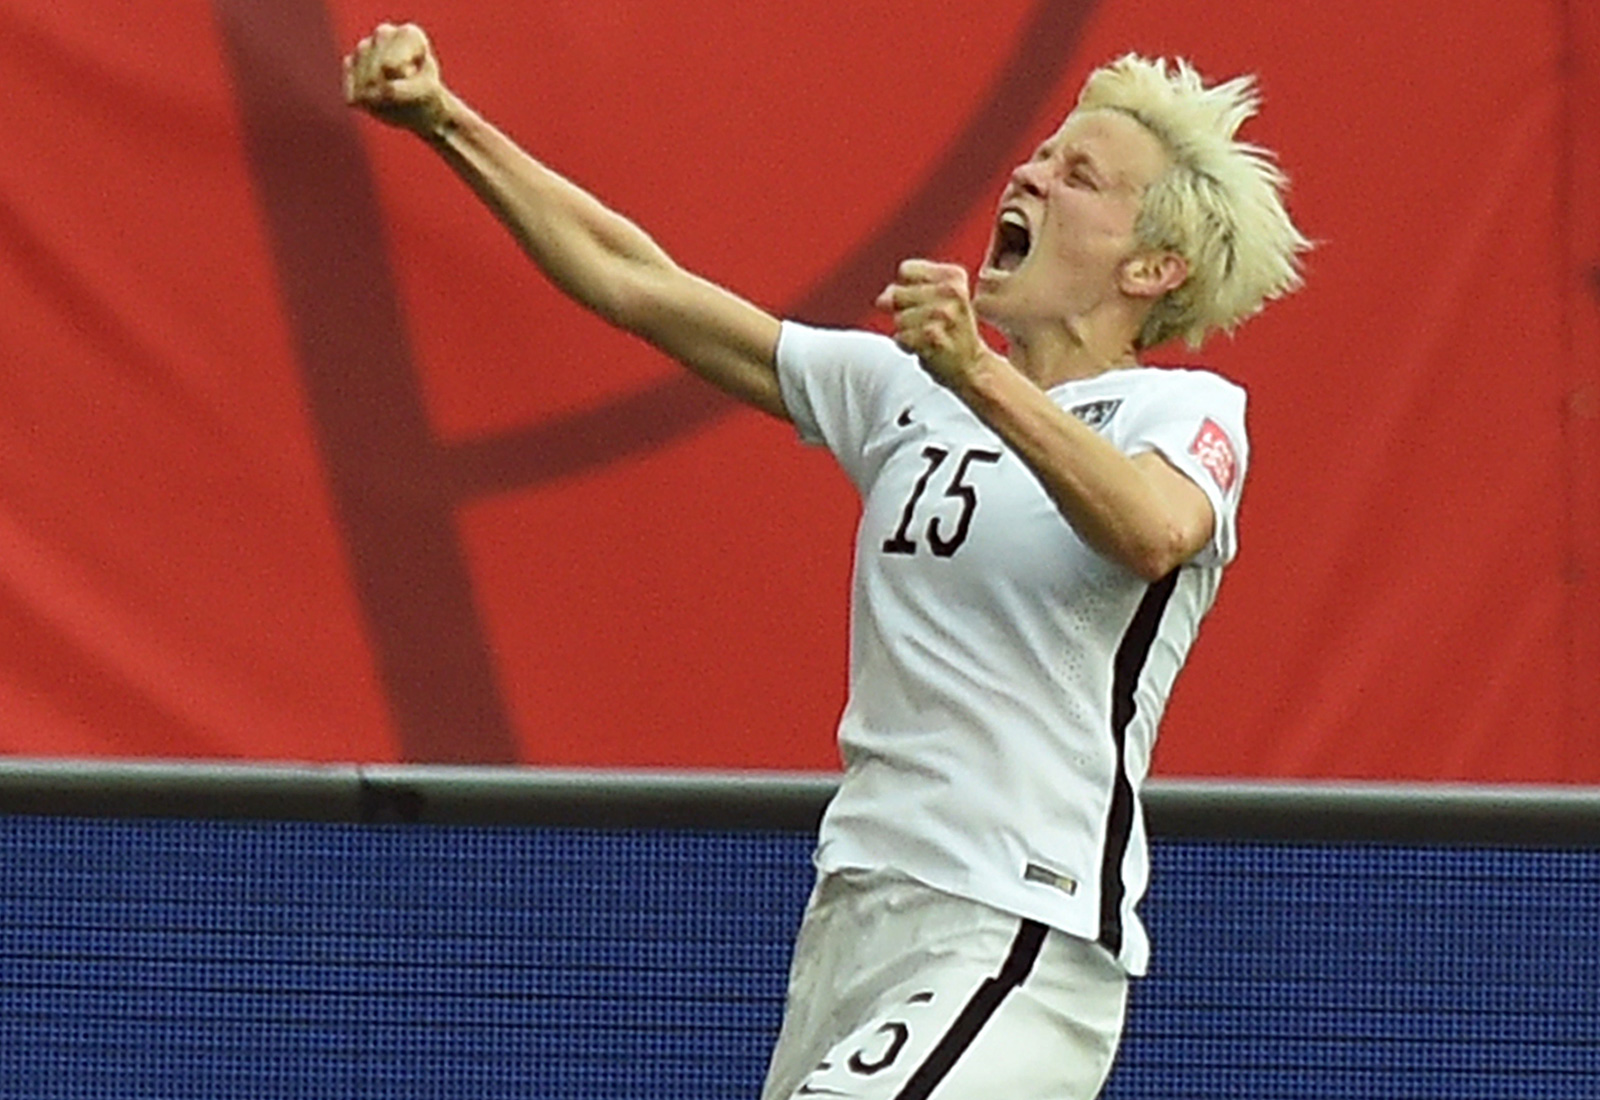 Megan Rapinoe lets out a yell after her second goal, which sealed the USA's 3-1 win over Australia to open Group D play in the Women's World Cup.